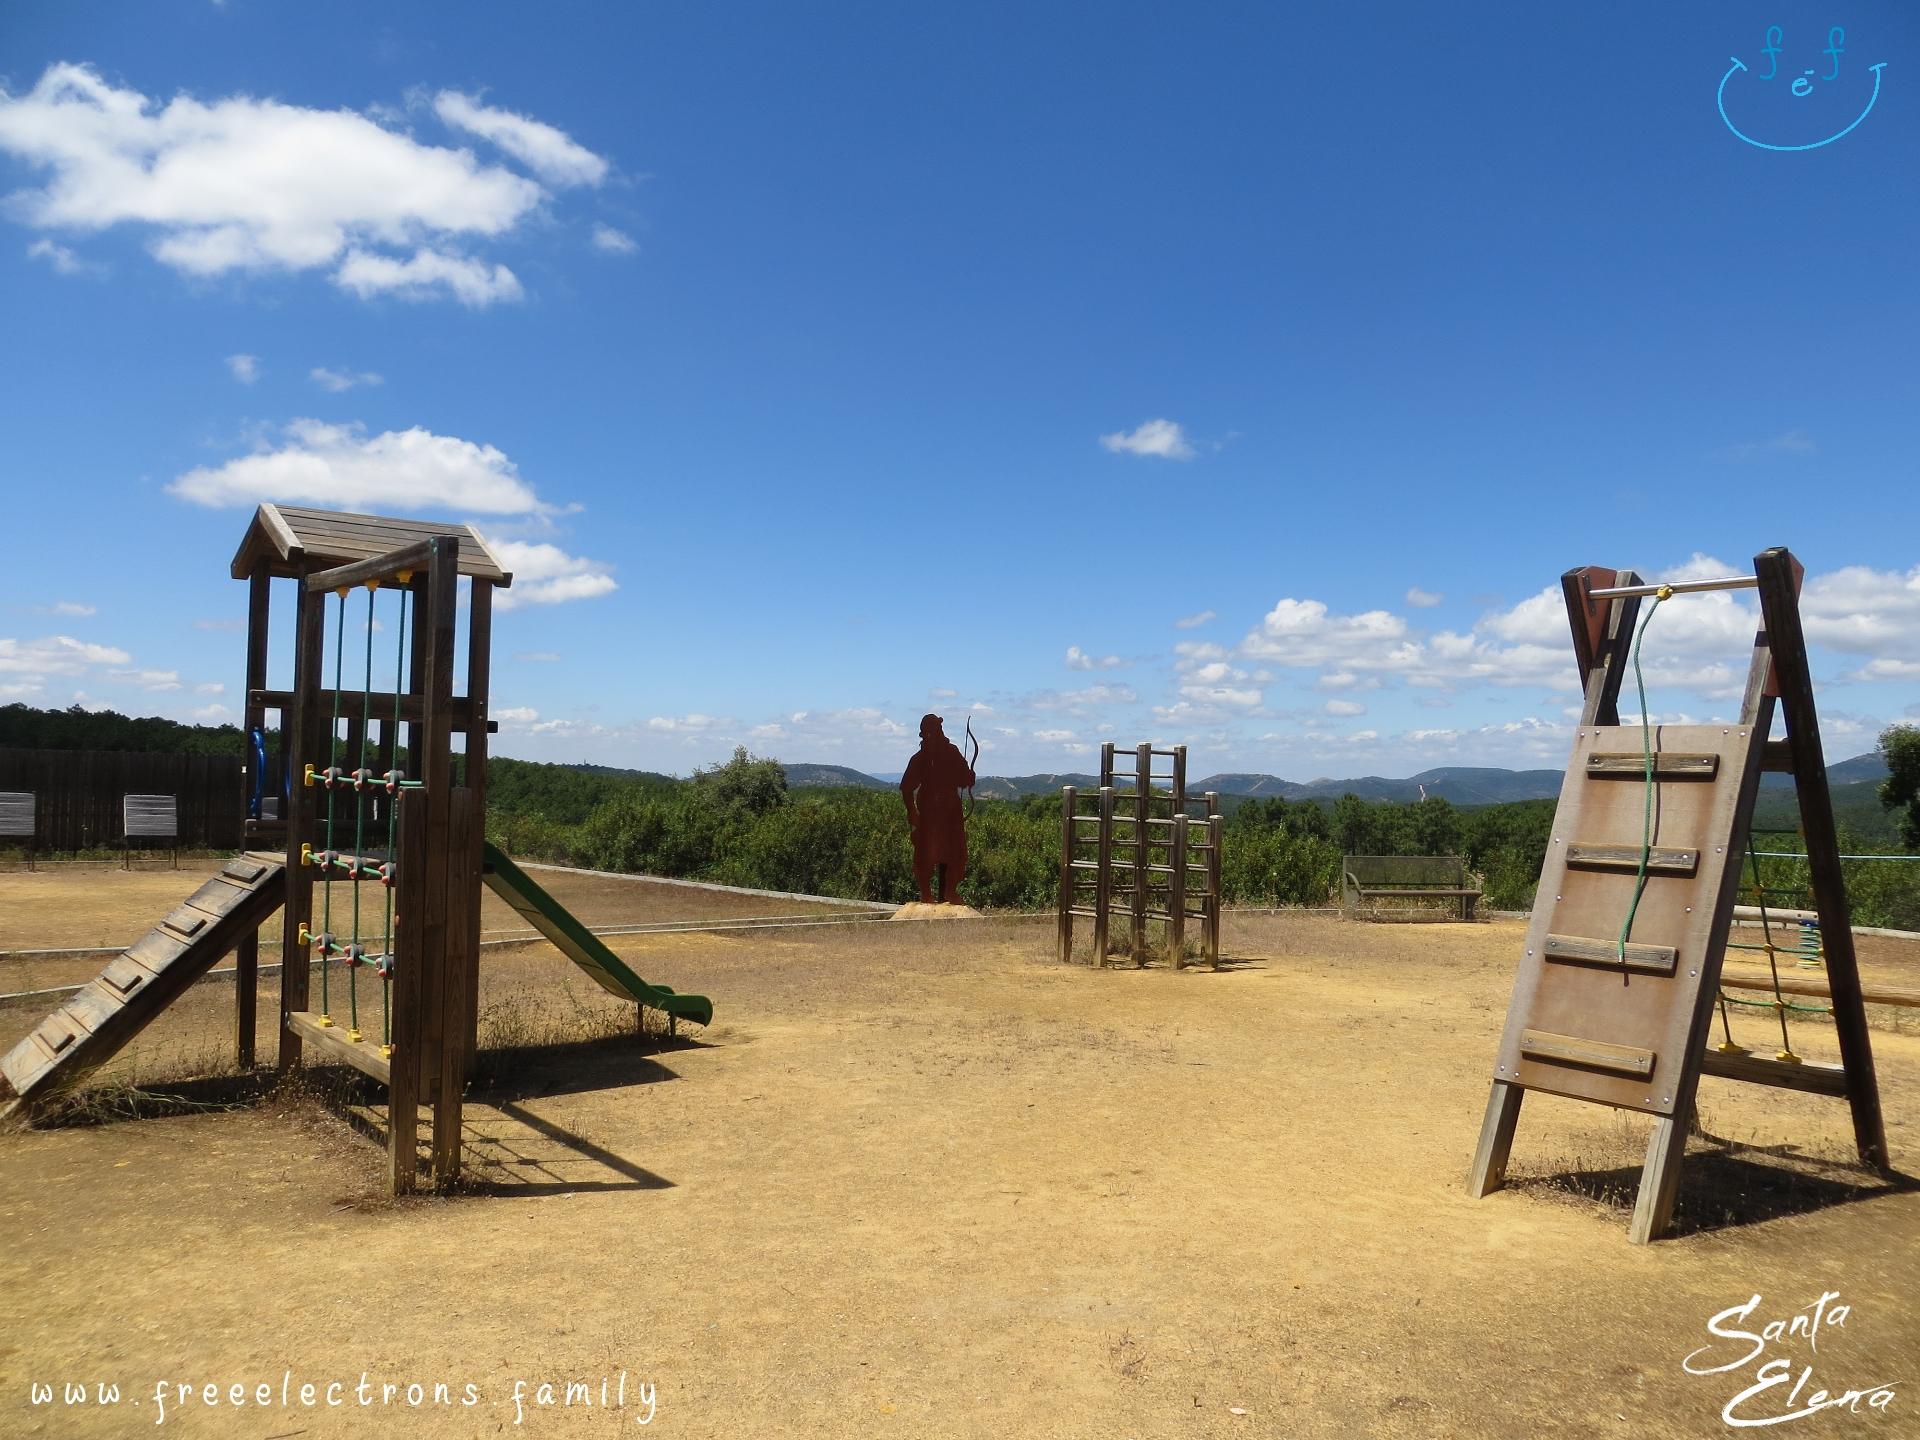 A #FreeElectrons.Family camping road trip Europe I stop in Santa Elena, Jaen, Spain (Espana).    The excellent playground at the museum of the Battle of the Las Navas, with archery and zipline and other wooden structures, lets children have outdoor free play after a visit.